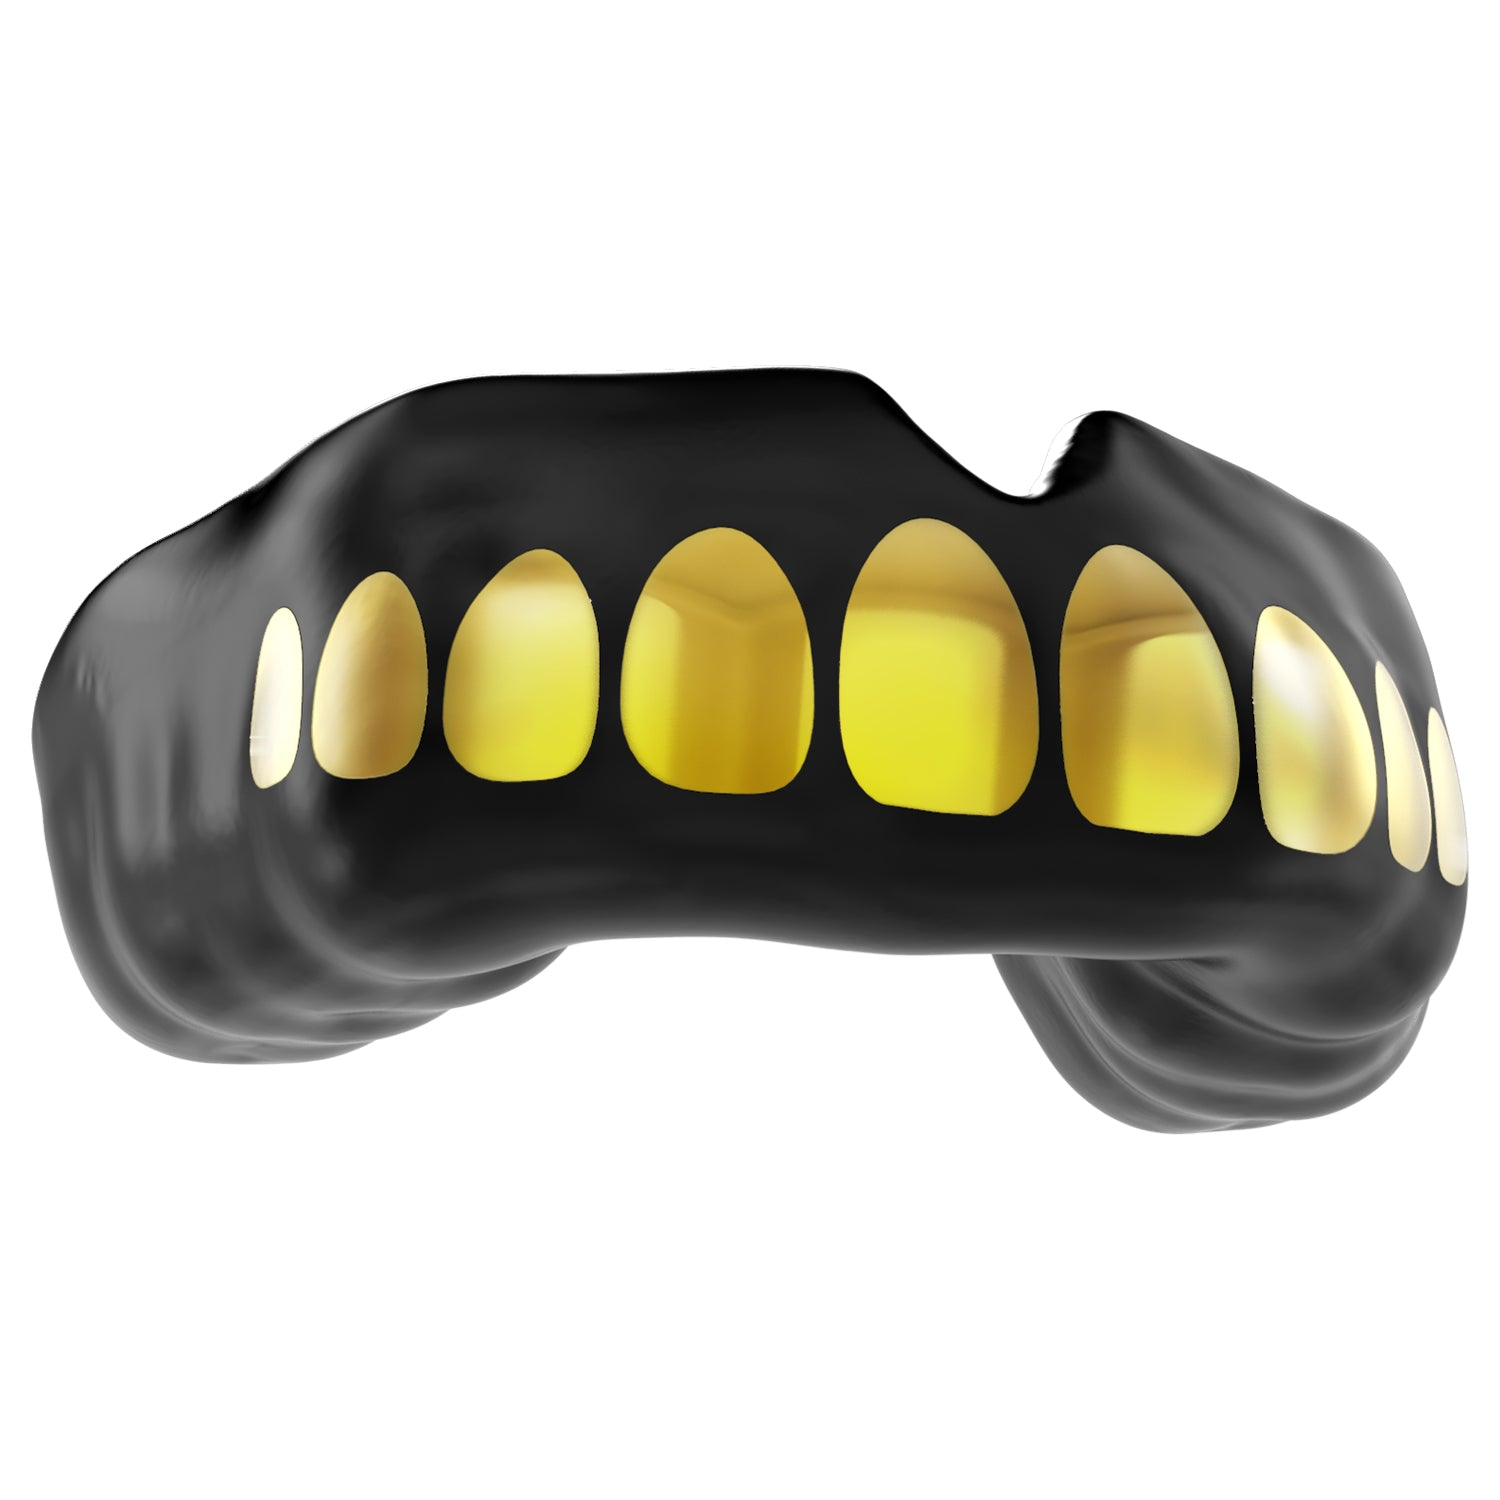 SAFEJAWZ® Popular Design Custom-fit Mouthguard - The Goldie - SAFEJAWZ gum shield